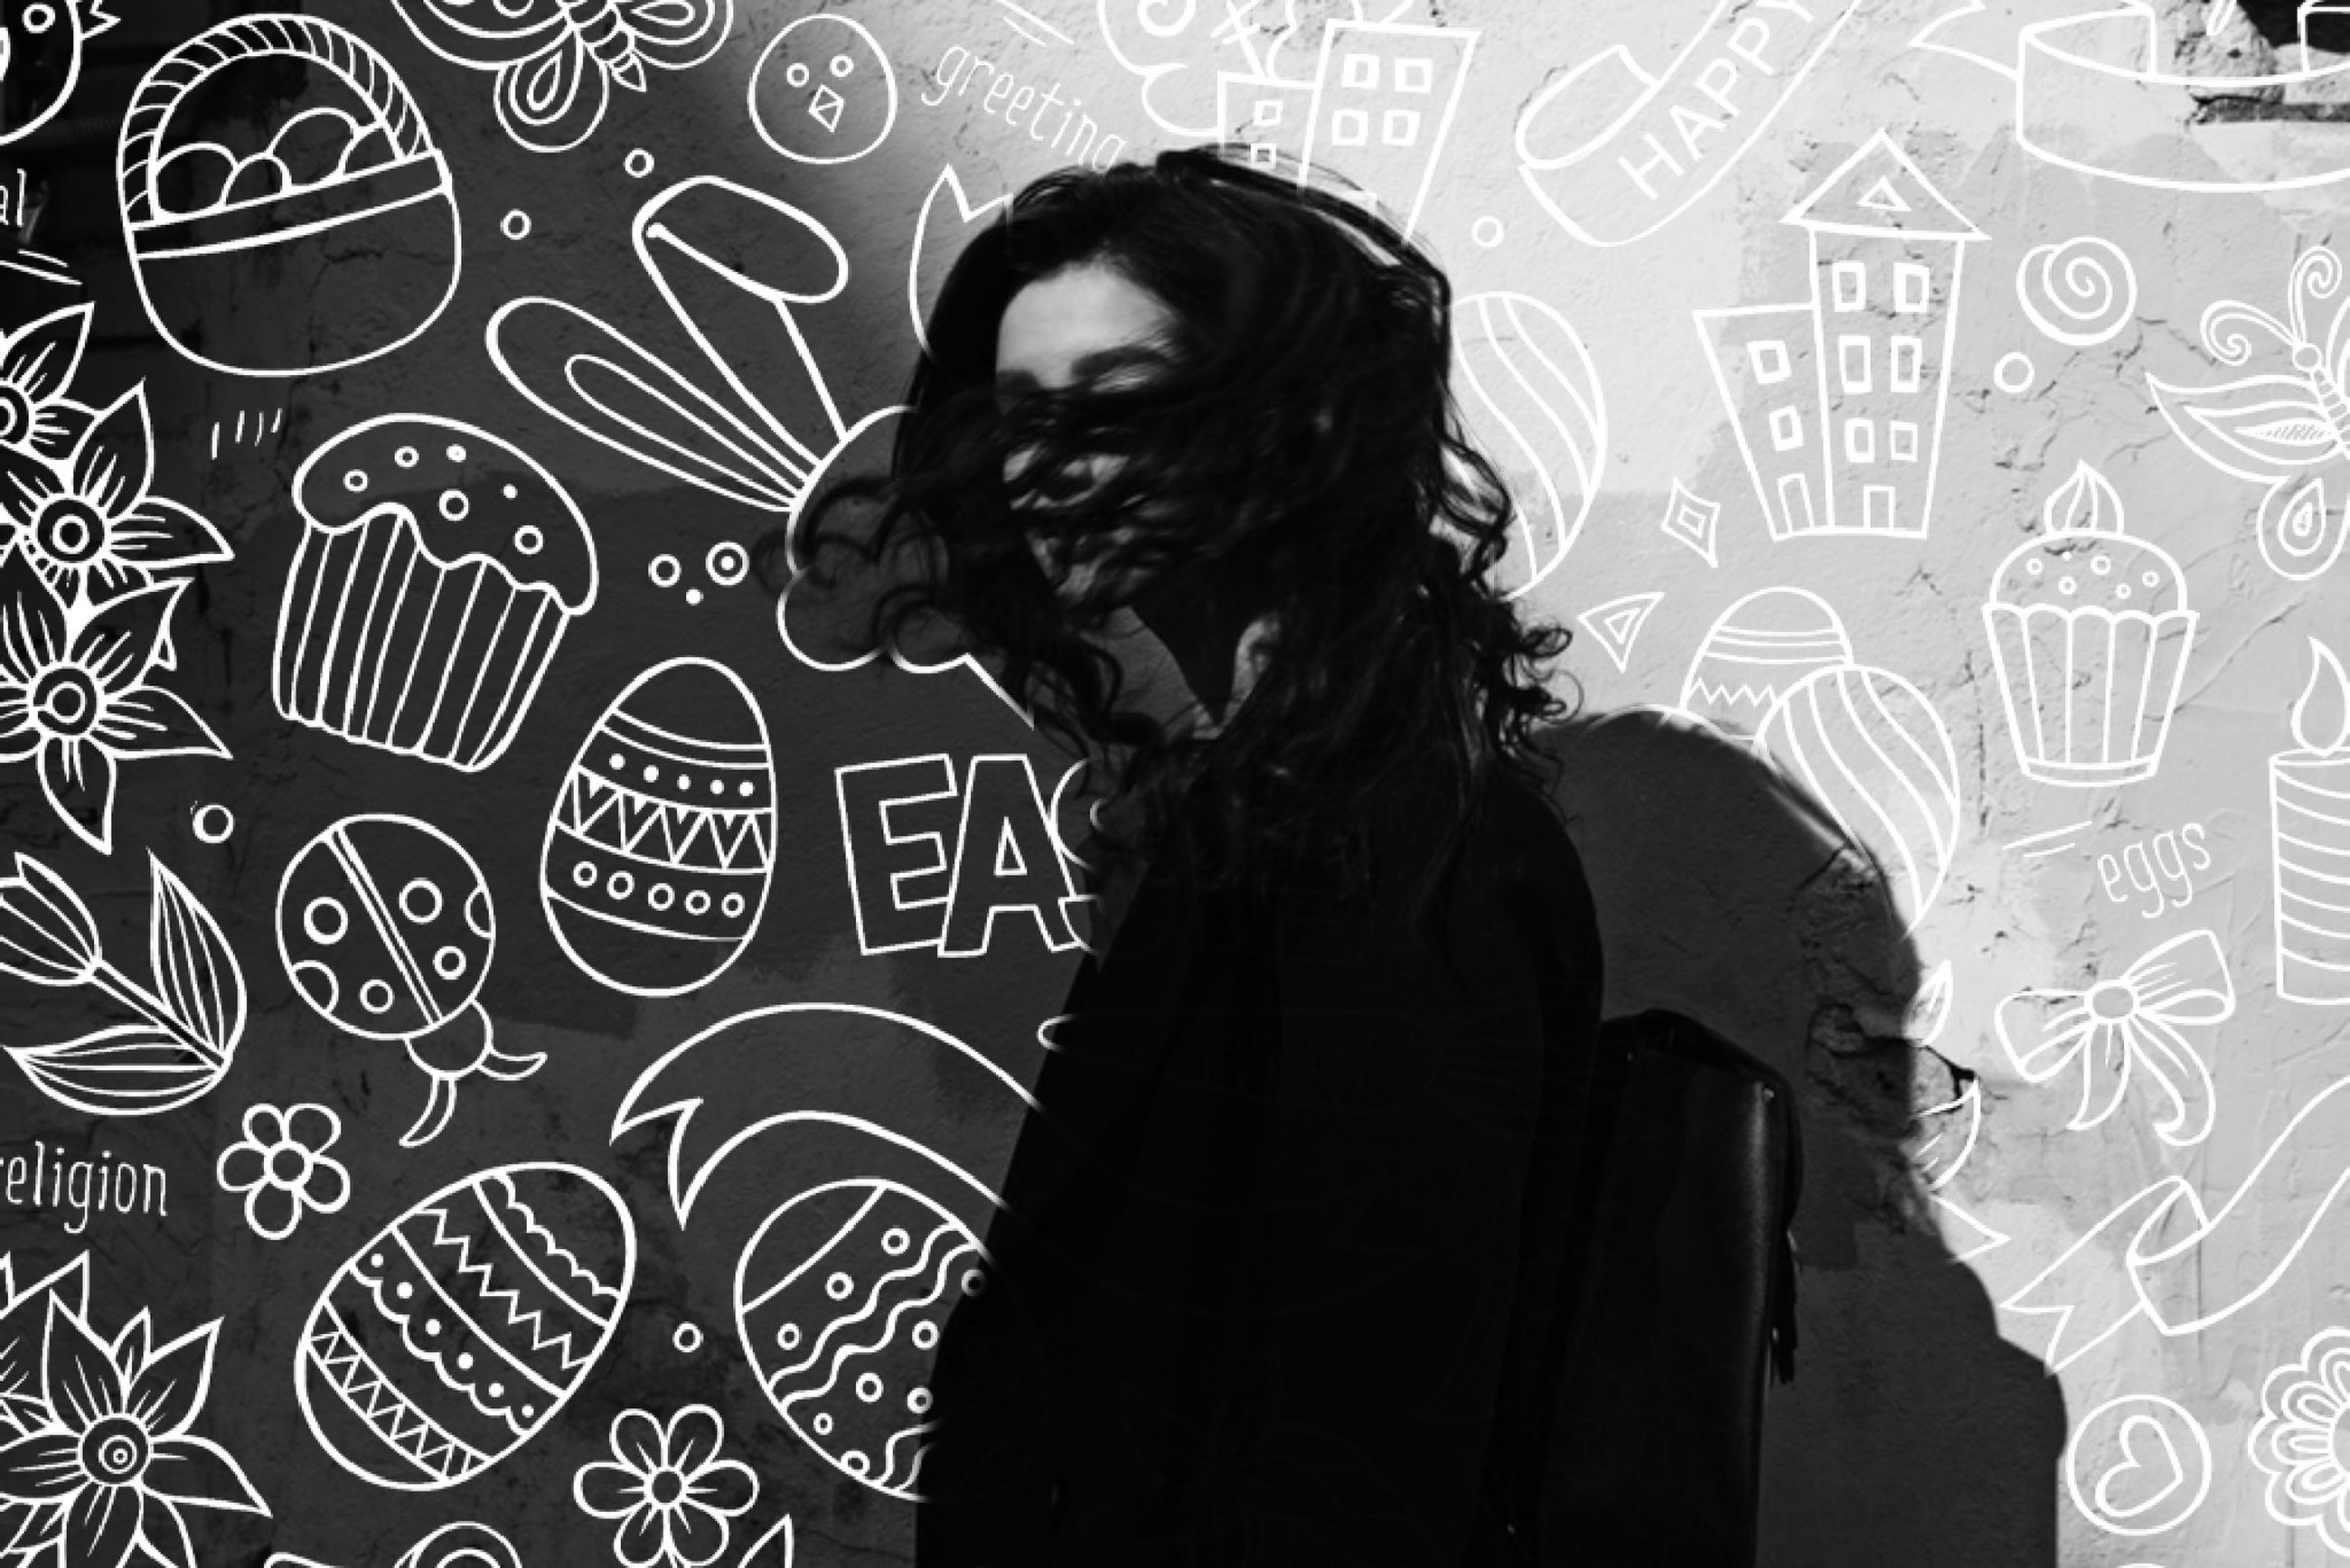 black, one person, black and white, monochrome photography, monochrome, pattern, adult, drawing, indoors, standing, young adult, lifestyles, waist up, creativity, wall - building feature, portrait, women, casual clothing, art, looking, leisure activity, font